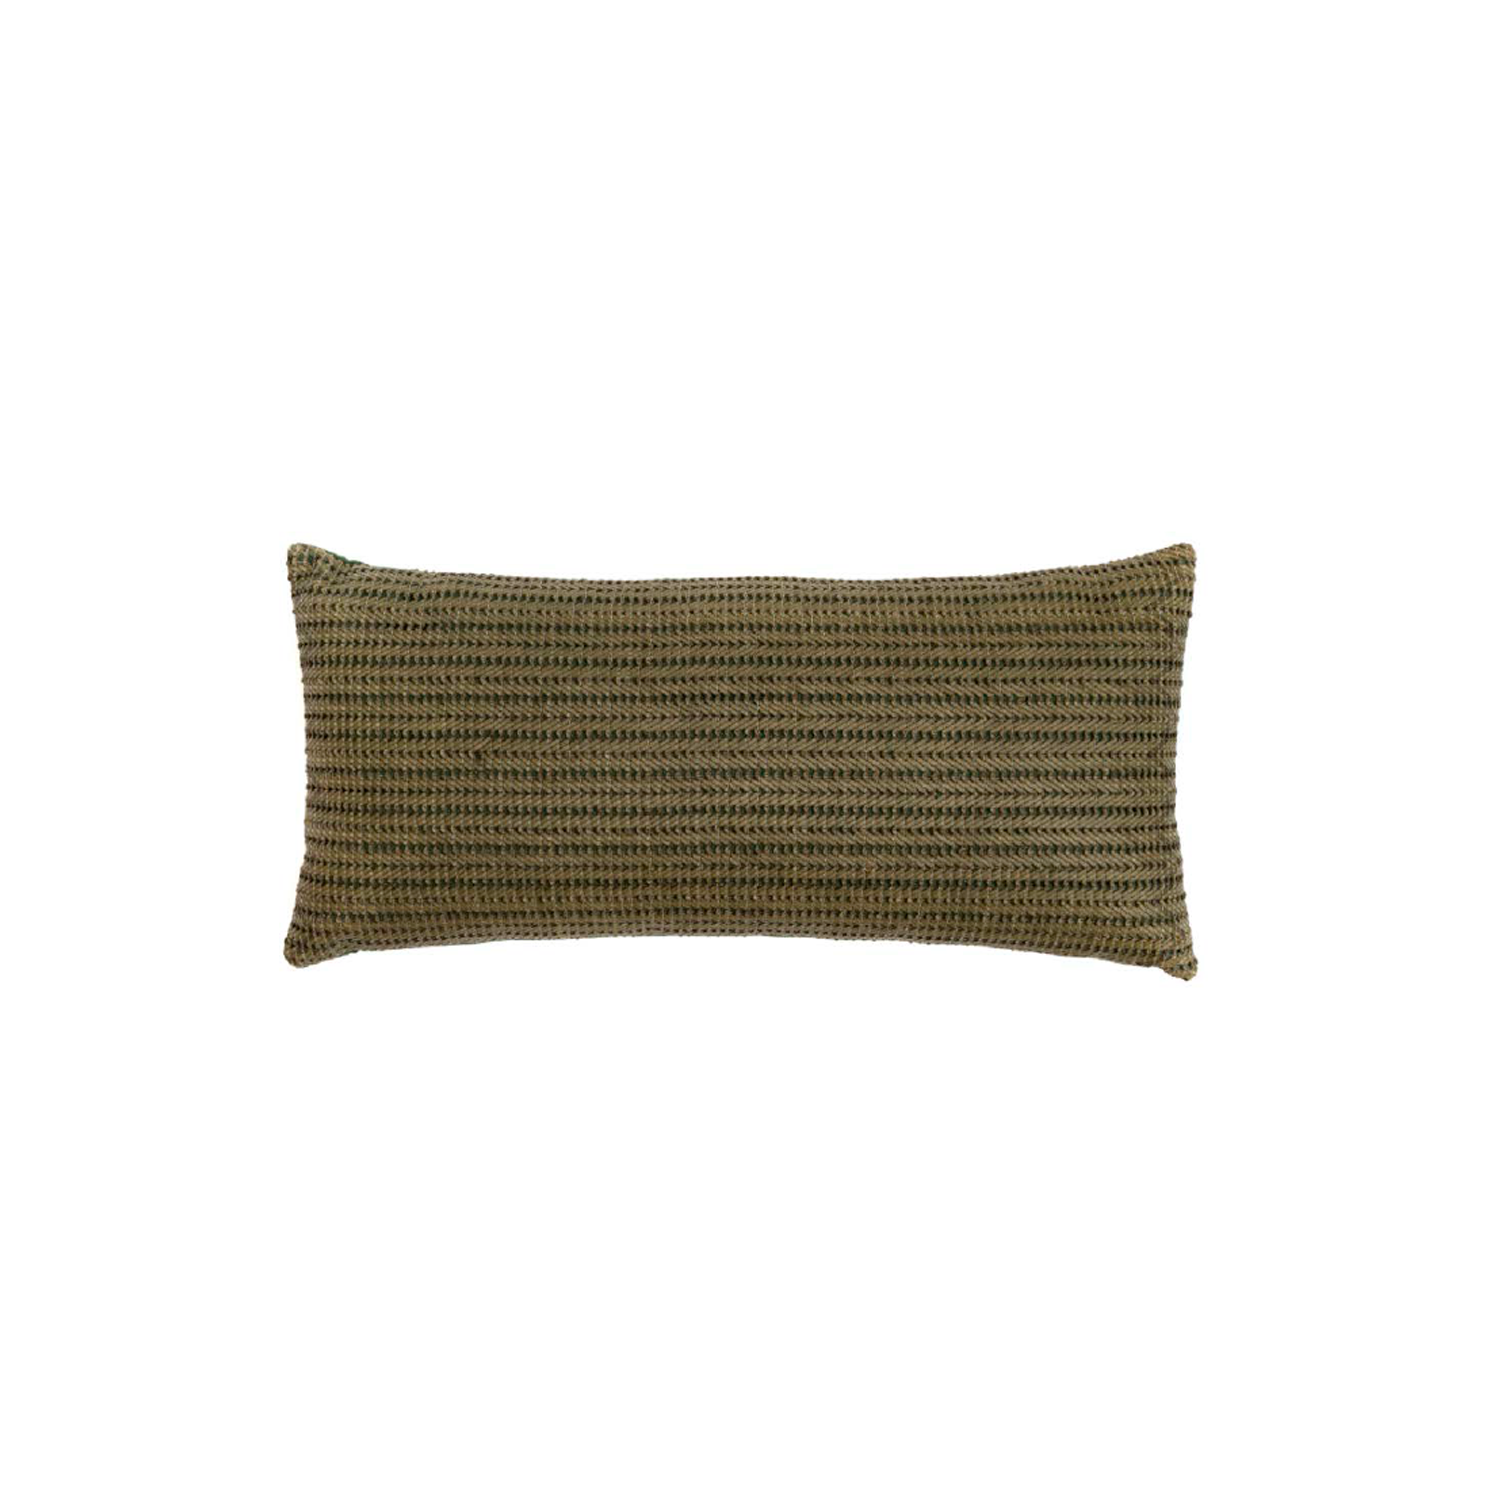 Espinha Woven Leather Cushion Small - The Espinha Woven Leather Cushion is designed to complement an ambient with a natural and sophisticated feeling. This cushion style is available in pleated leather or pleated suede leather. Elisa Atheniense woven handmade leather cushions are specially manufactured in Brazil using an exclusive treated leather that brings the soft feel touch to every single piece.   The front panel is handwoven in leather and the back panel is 100% Pes, made in Brazil.  The inner cushion is available in Hollow Fibre and European Duck Feathers, made in the UK.  Lanca Bicolor Woven Leather Cushion is available in multiple colours of leather. Please enquire for colour combination, see colour chart for reference.   | Matter of Stuff